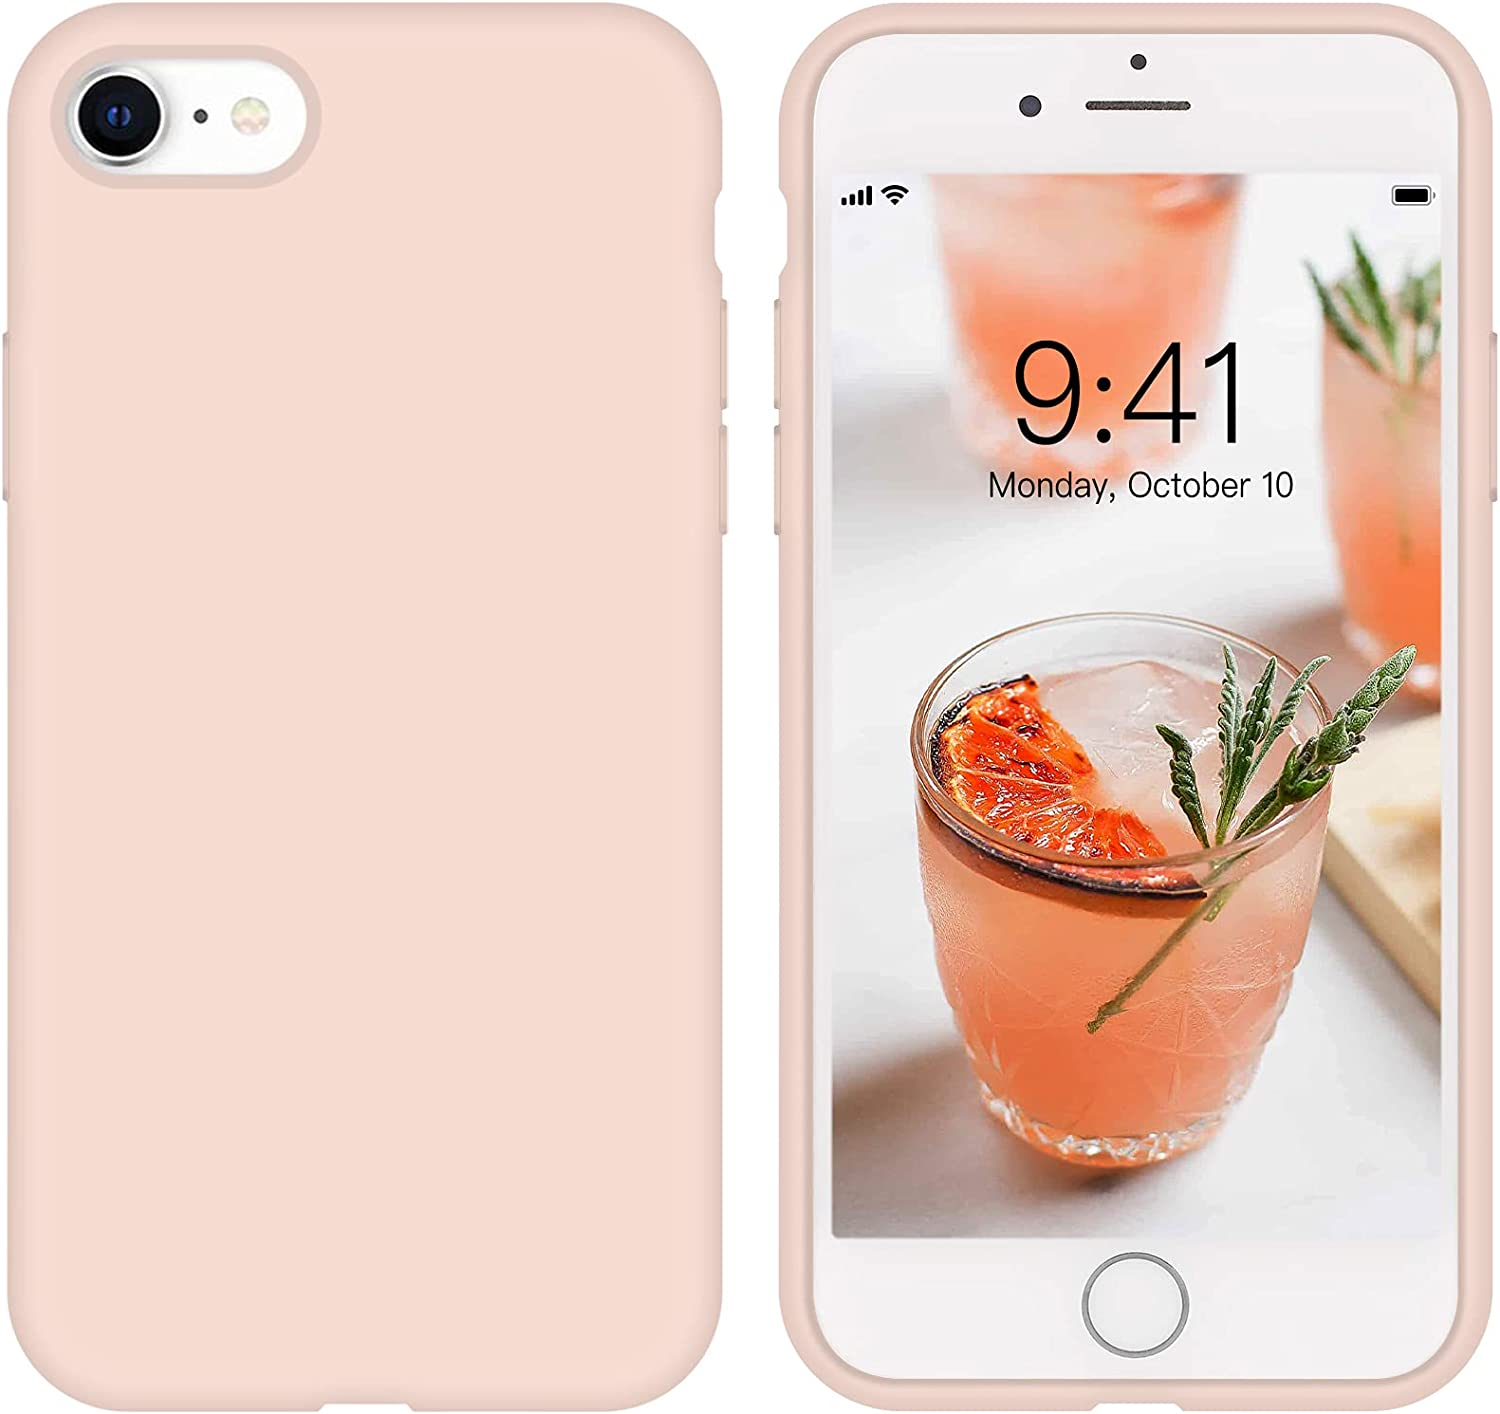 iPhone SE Case 2020 Liquid Silicone iPhone 8 Case, iPhone 7 Case ZVastt Slim Gel Rubber Phone Case Soft Anti-Scratch Durable Microfiber Lining Full Body Shockproof Protective Cover, Pink